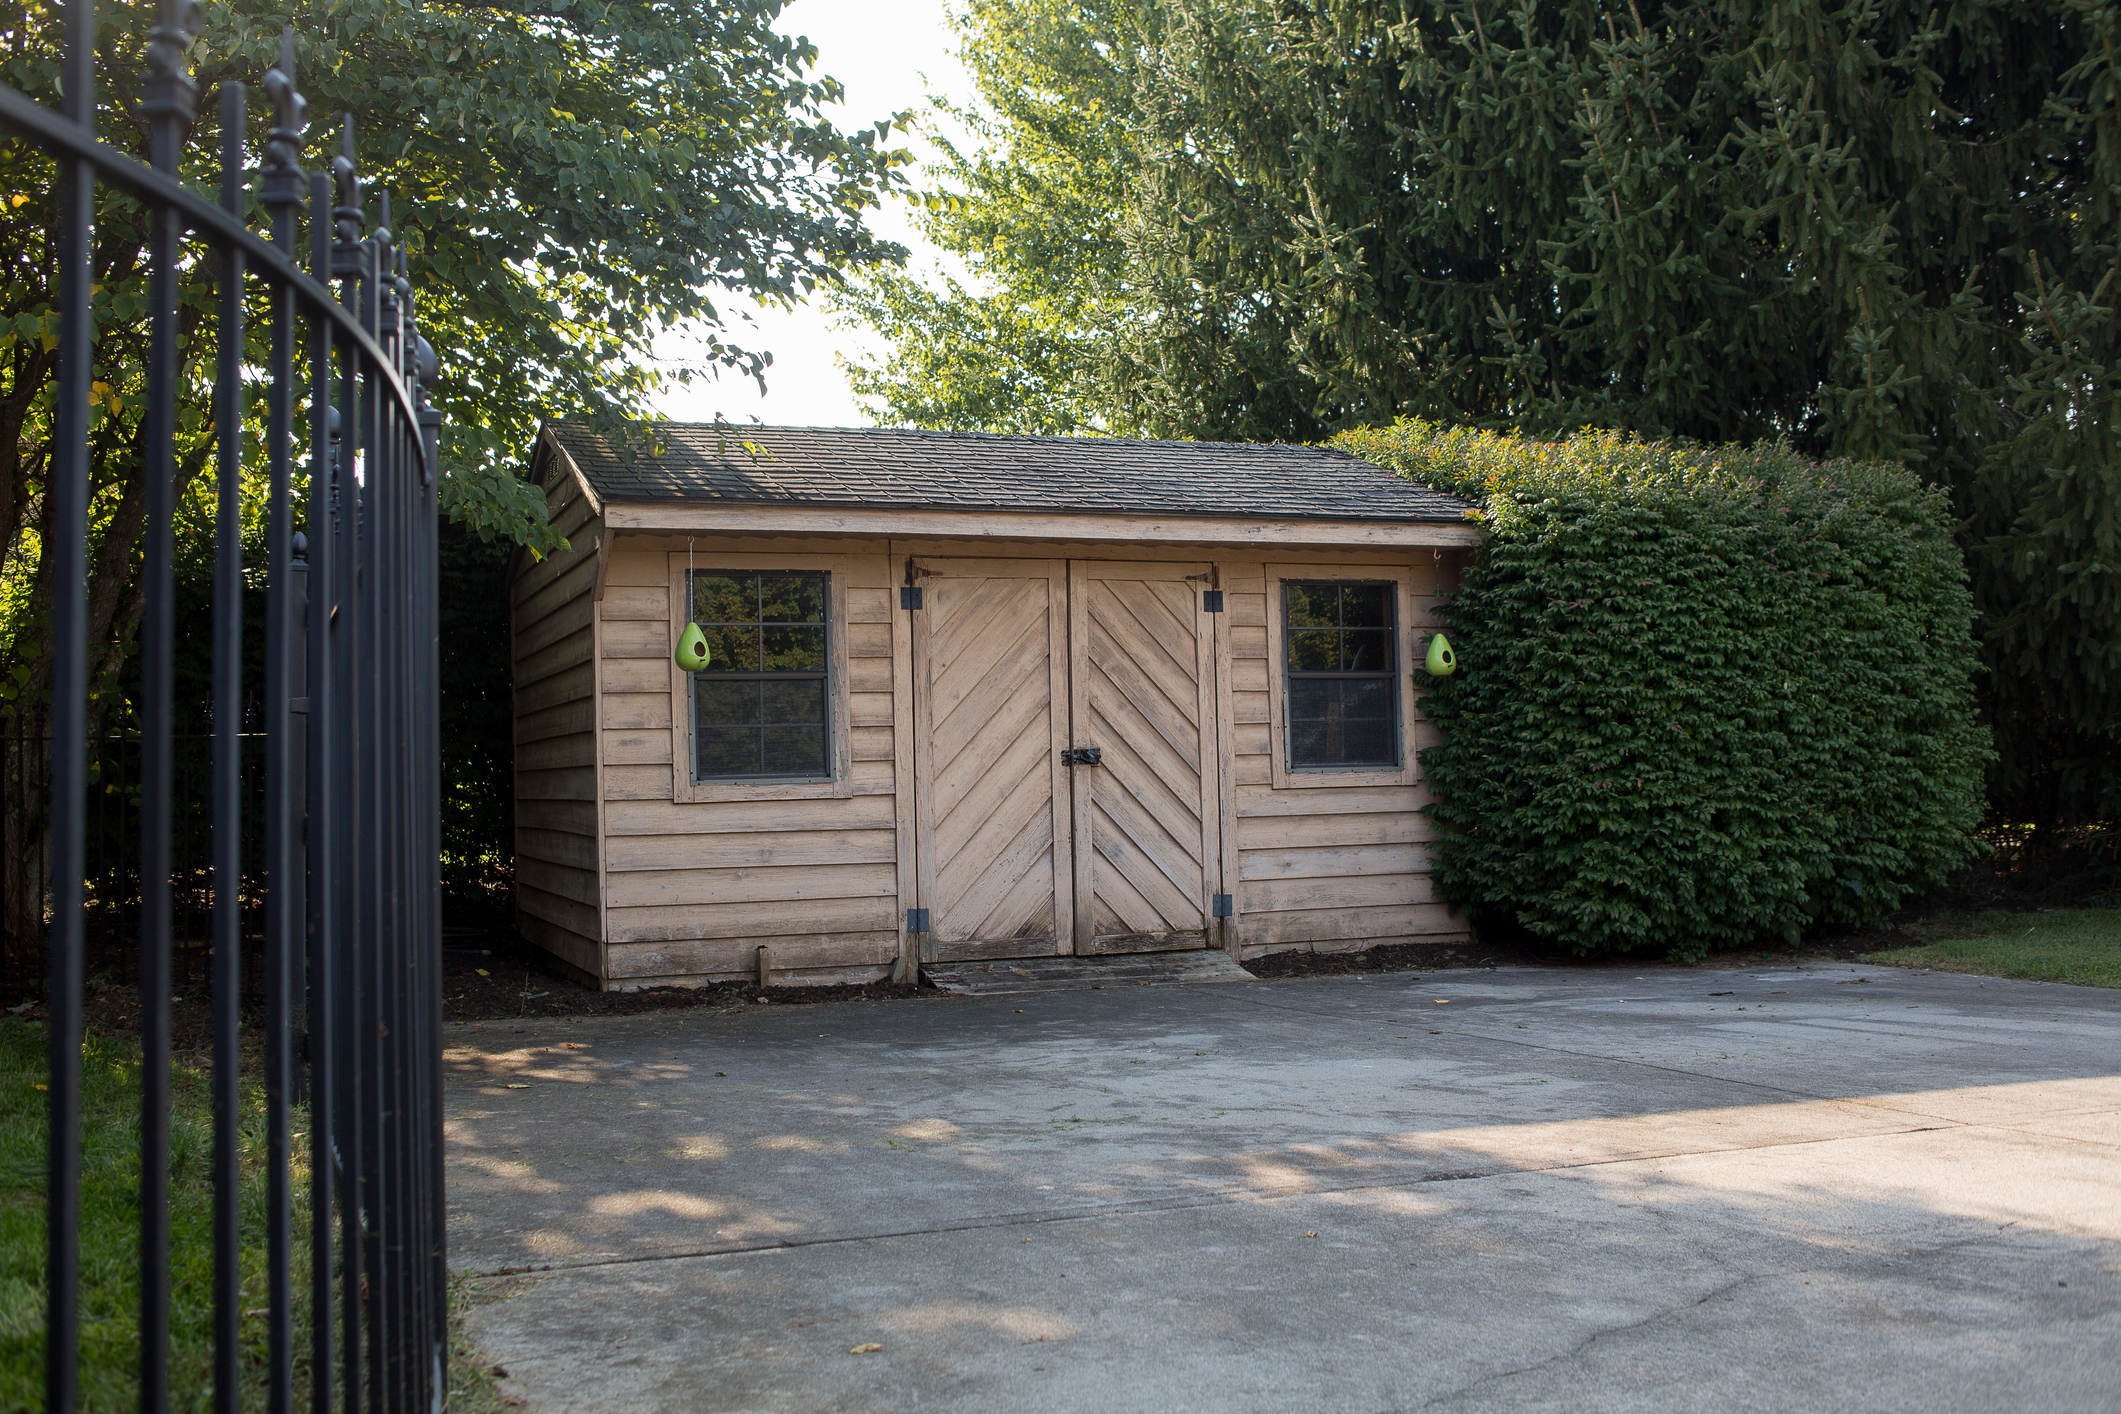 Backyard shed for storing pool chemicals.